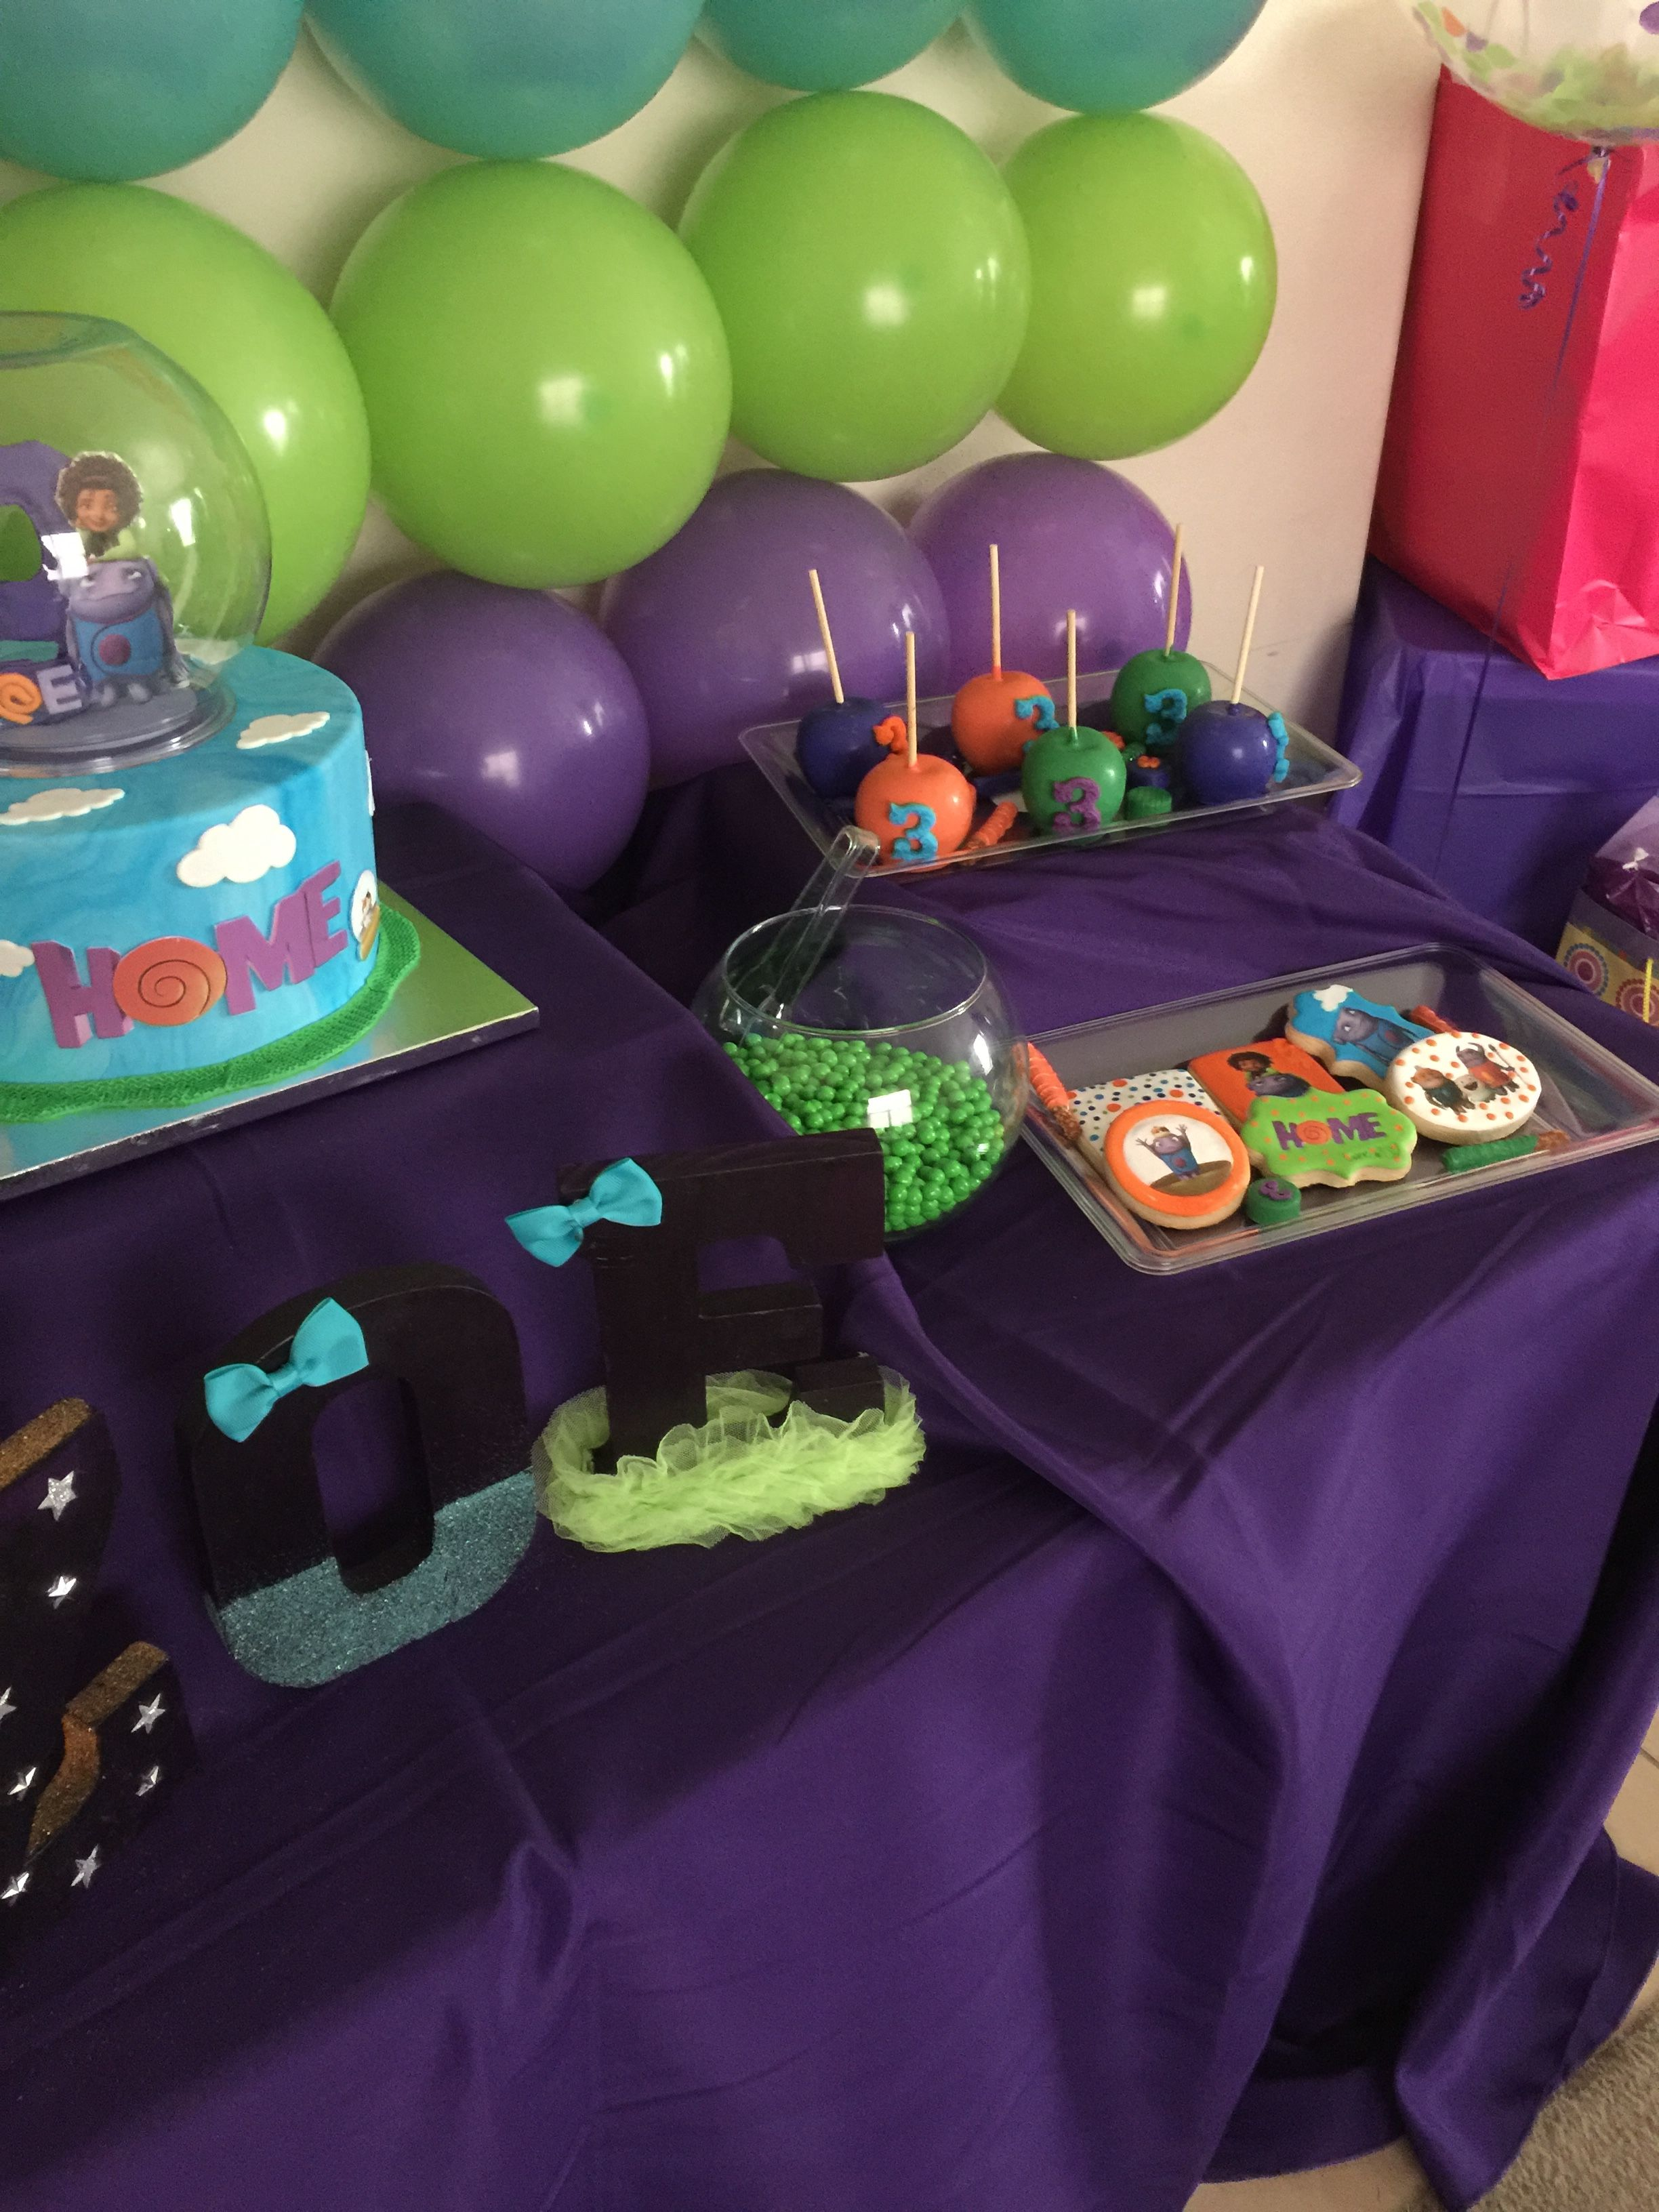 Dreamworks Home Boov Party Dessert Table